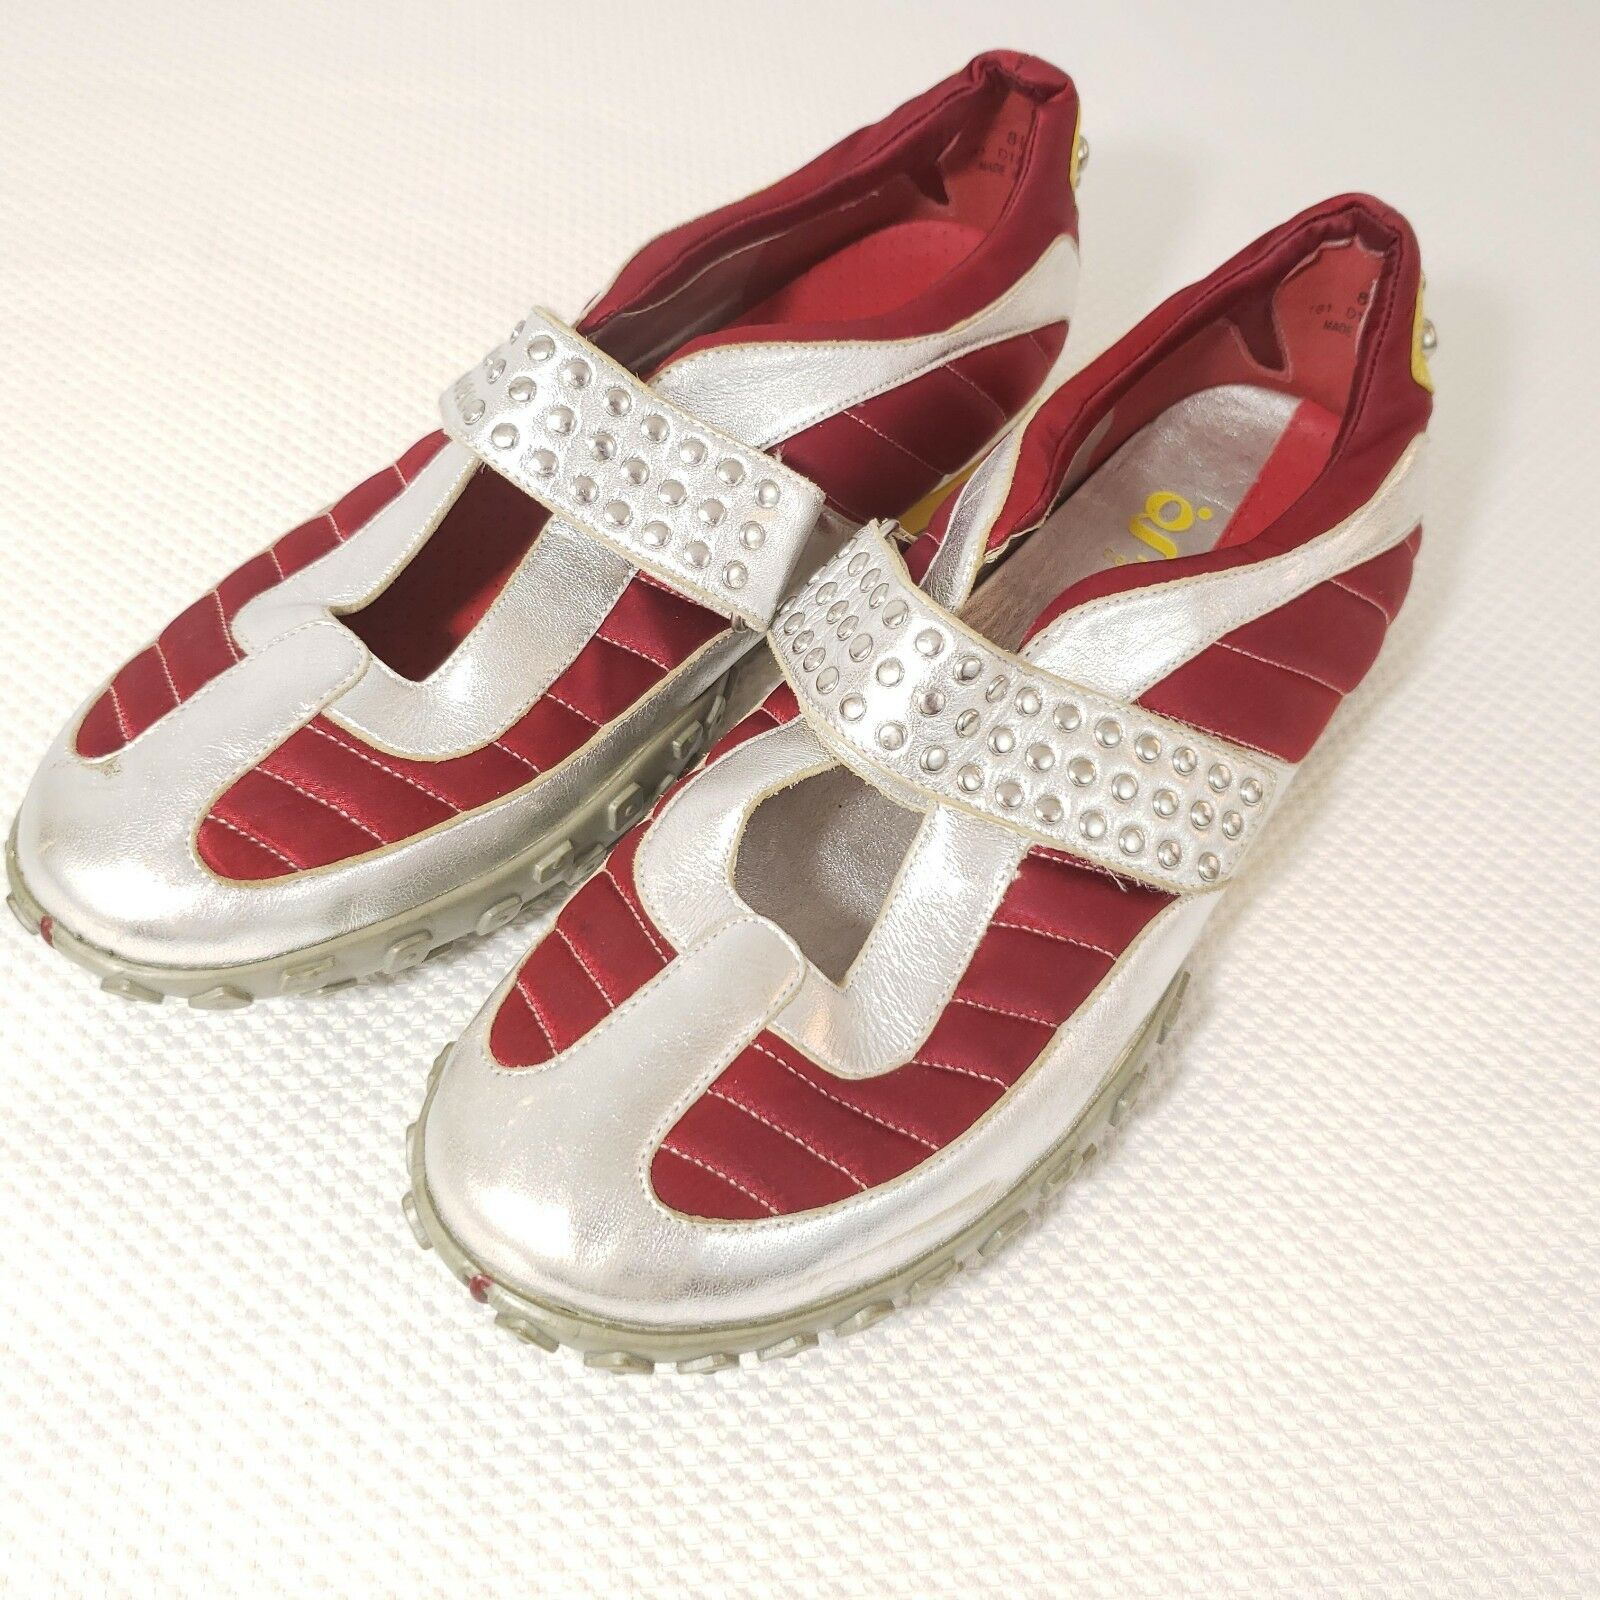 G Series Nike Lab Red Silver Studded Mary Jane shoes Sneakers 8.5